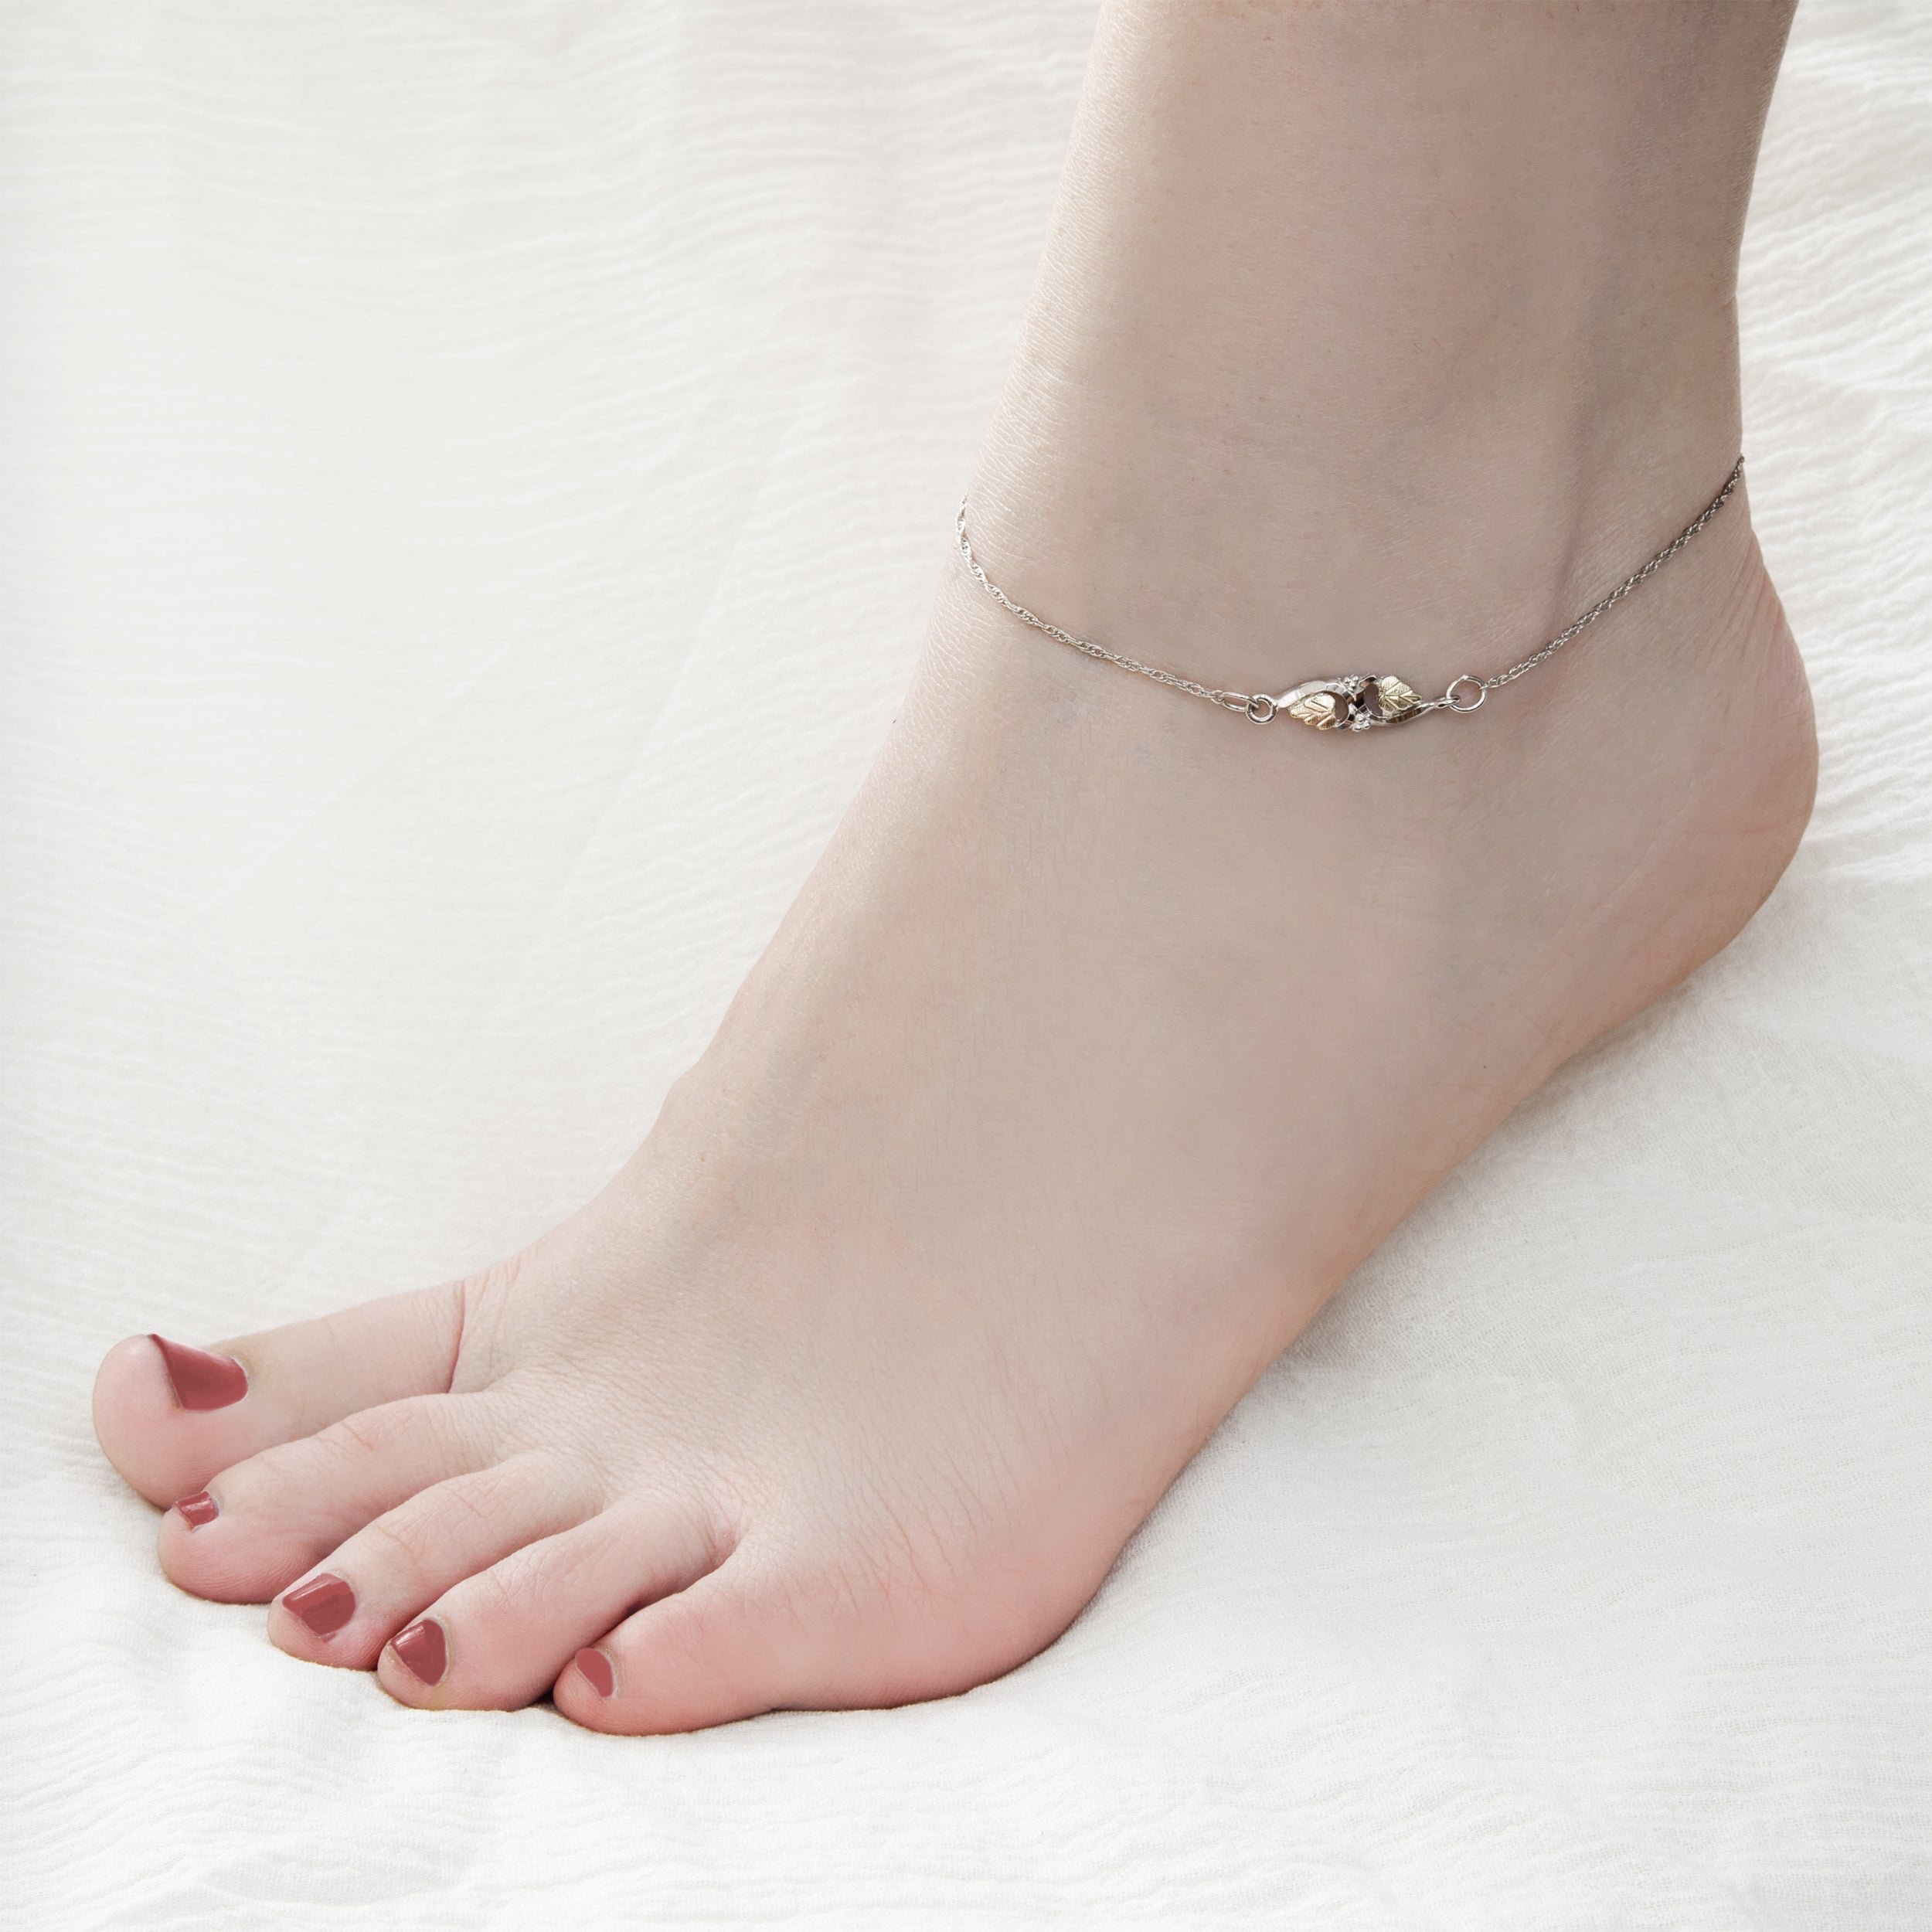 bracelet tone can buy us claire bracelets gold s i anklet anchor where ankle